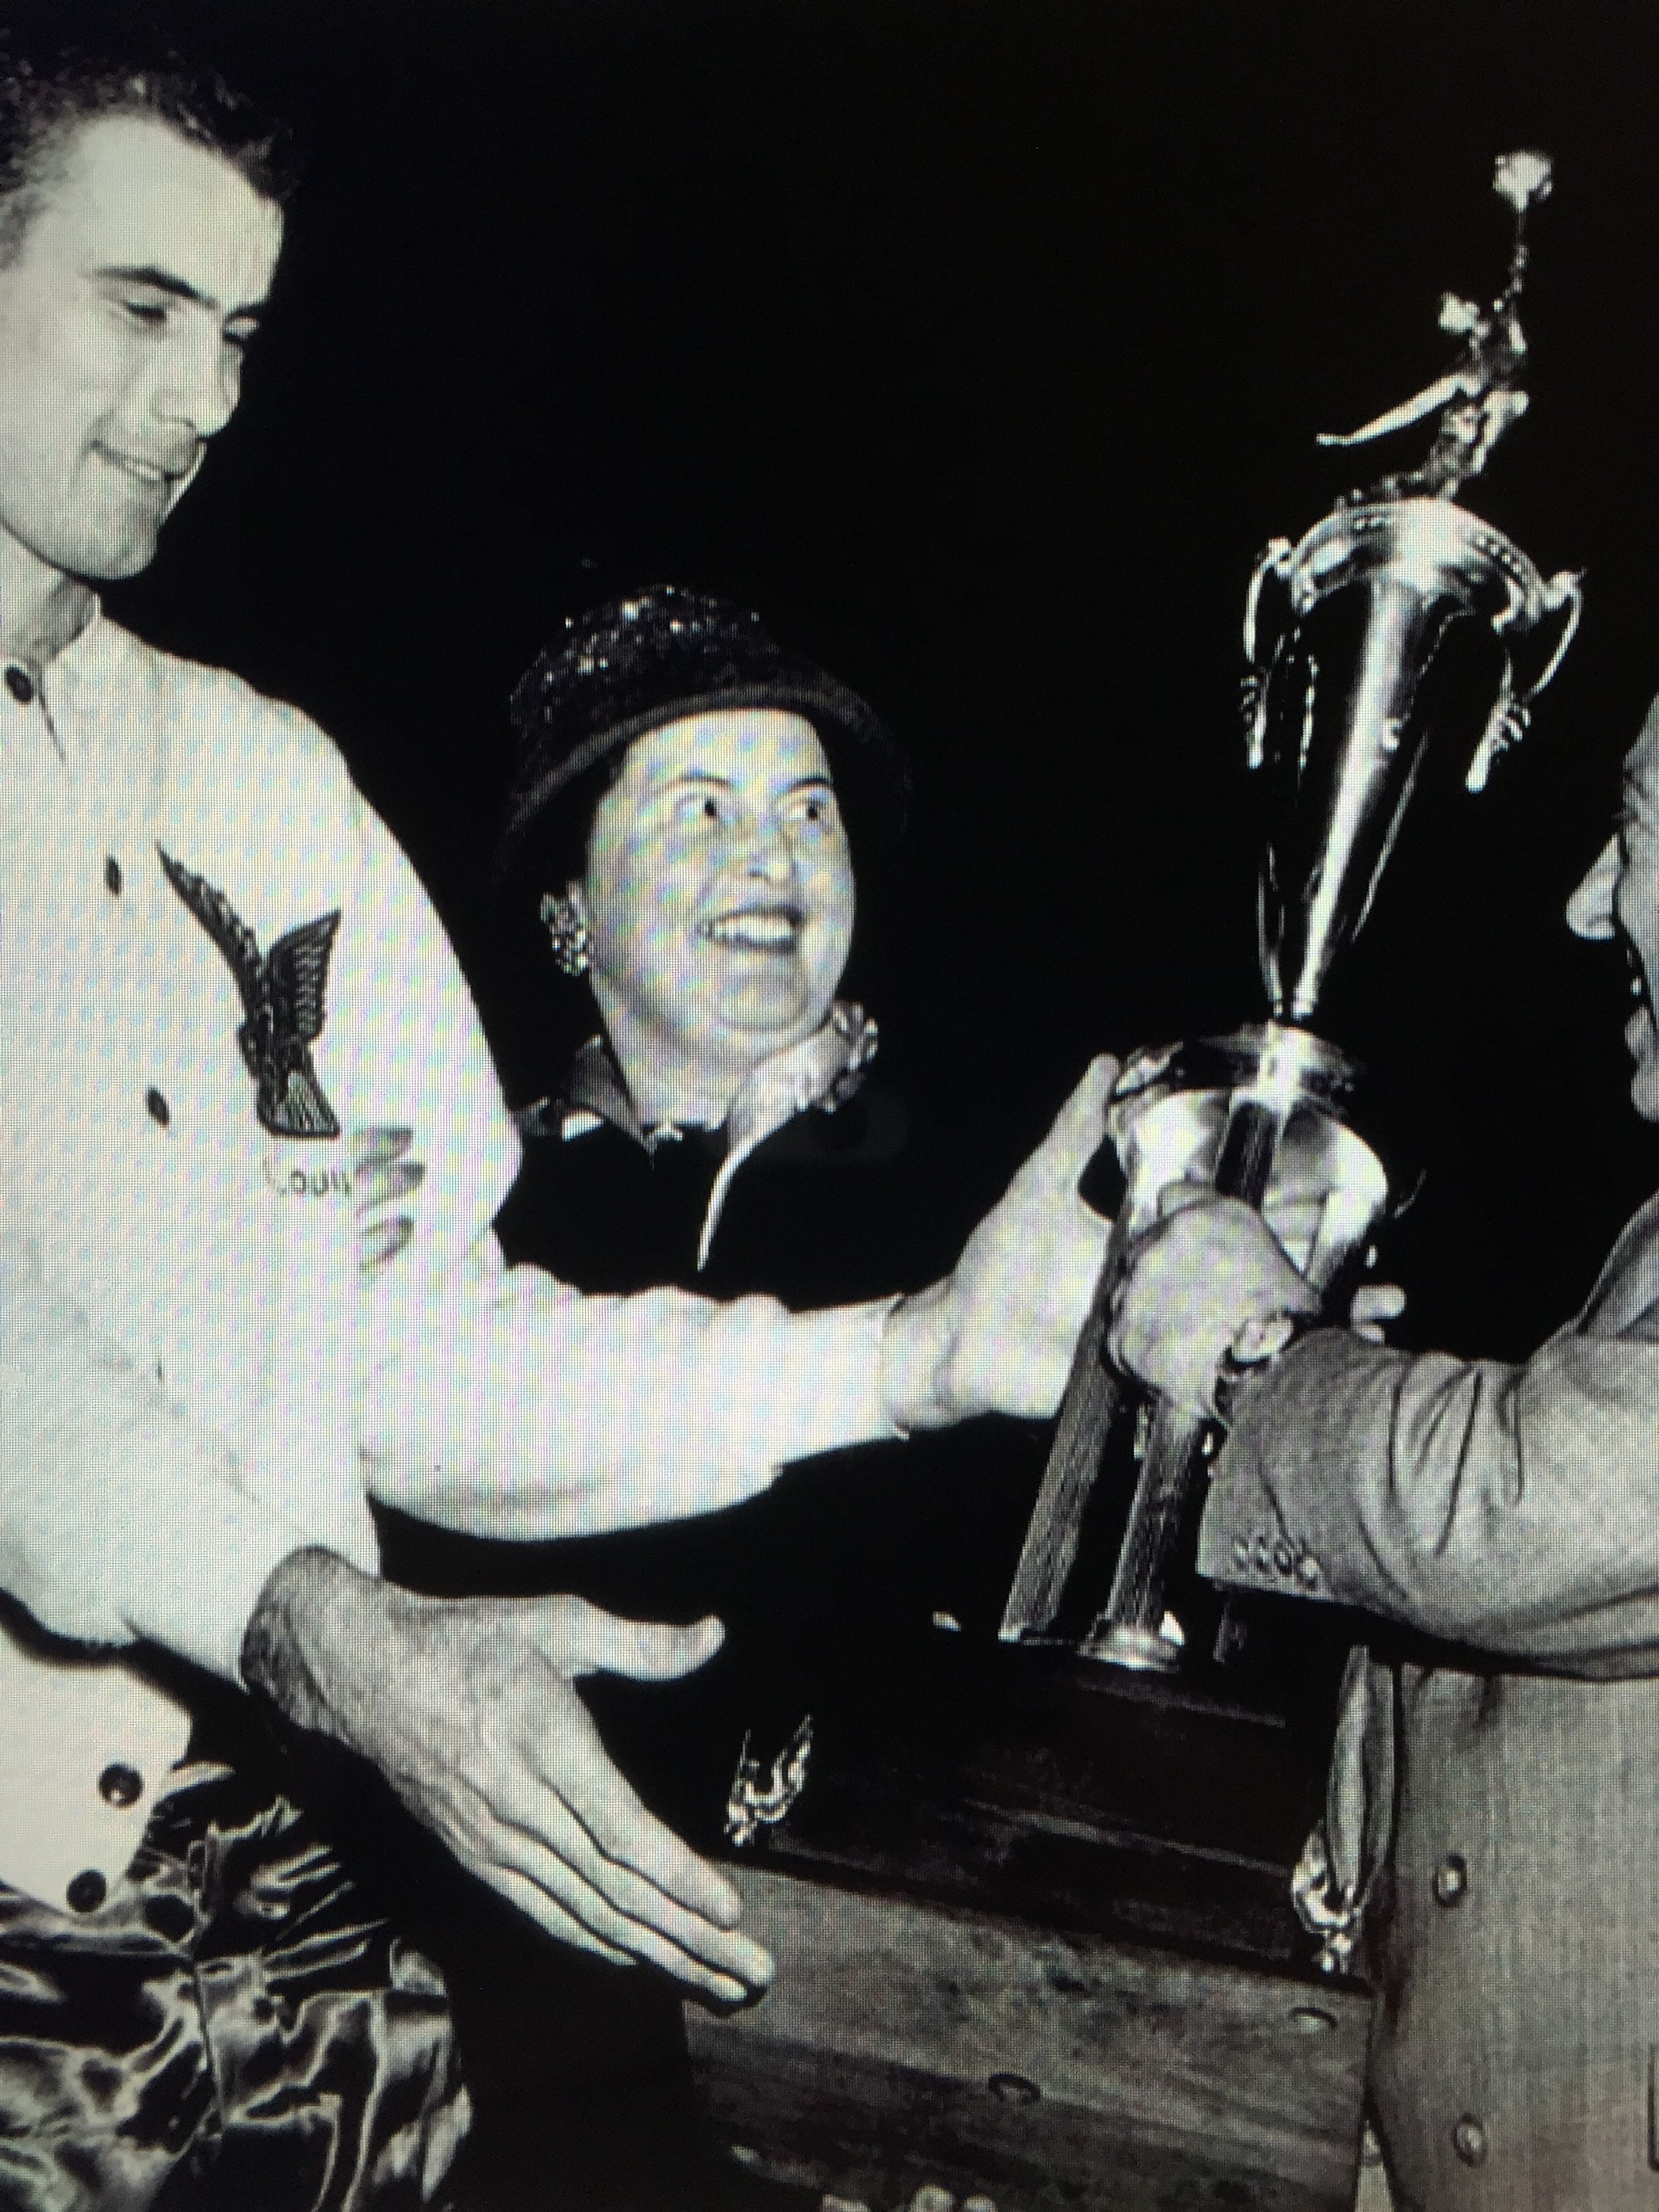 Bob Pettit was named MVP as the West dominated the East 108 94 at